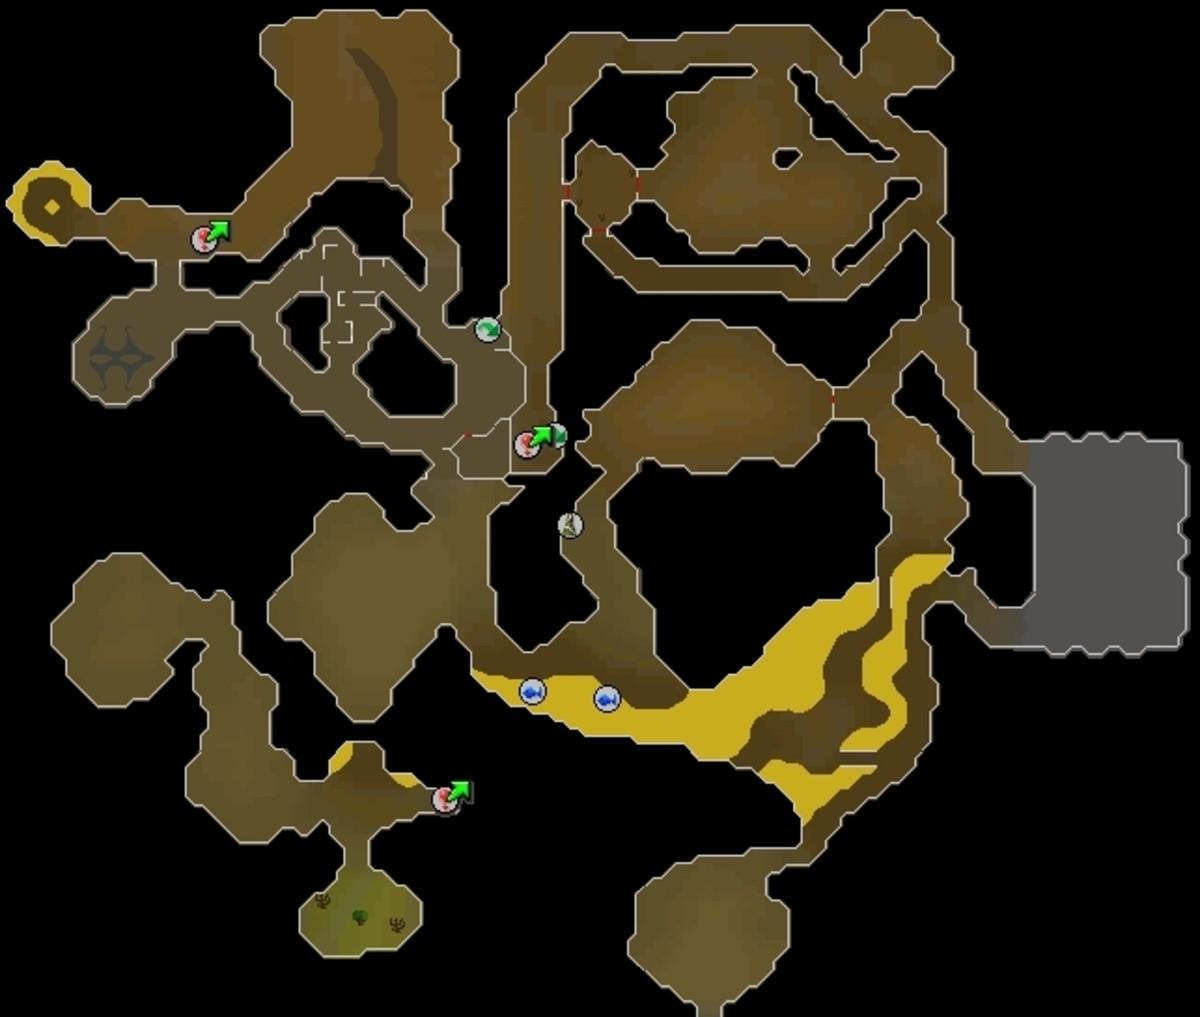 Taverly Dungeon -  You start at the green arrow in the center. The exit ladder is the green arrow to the northwest.